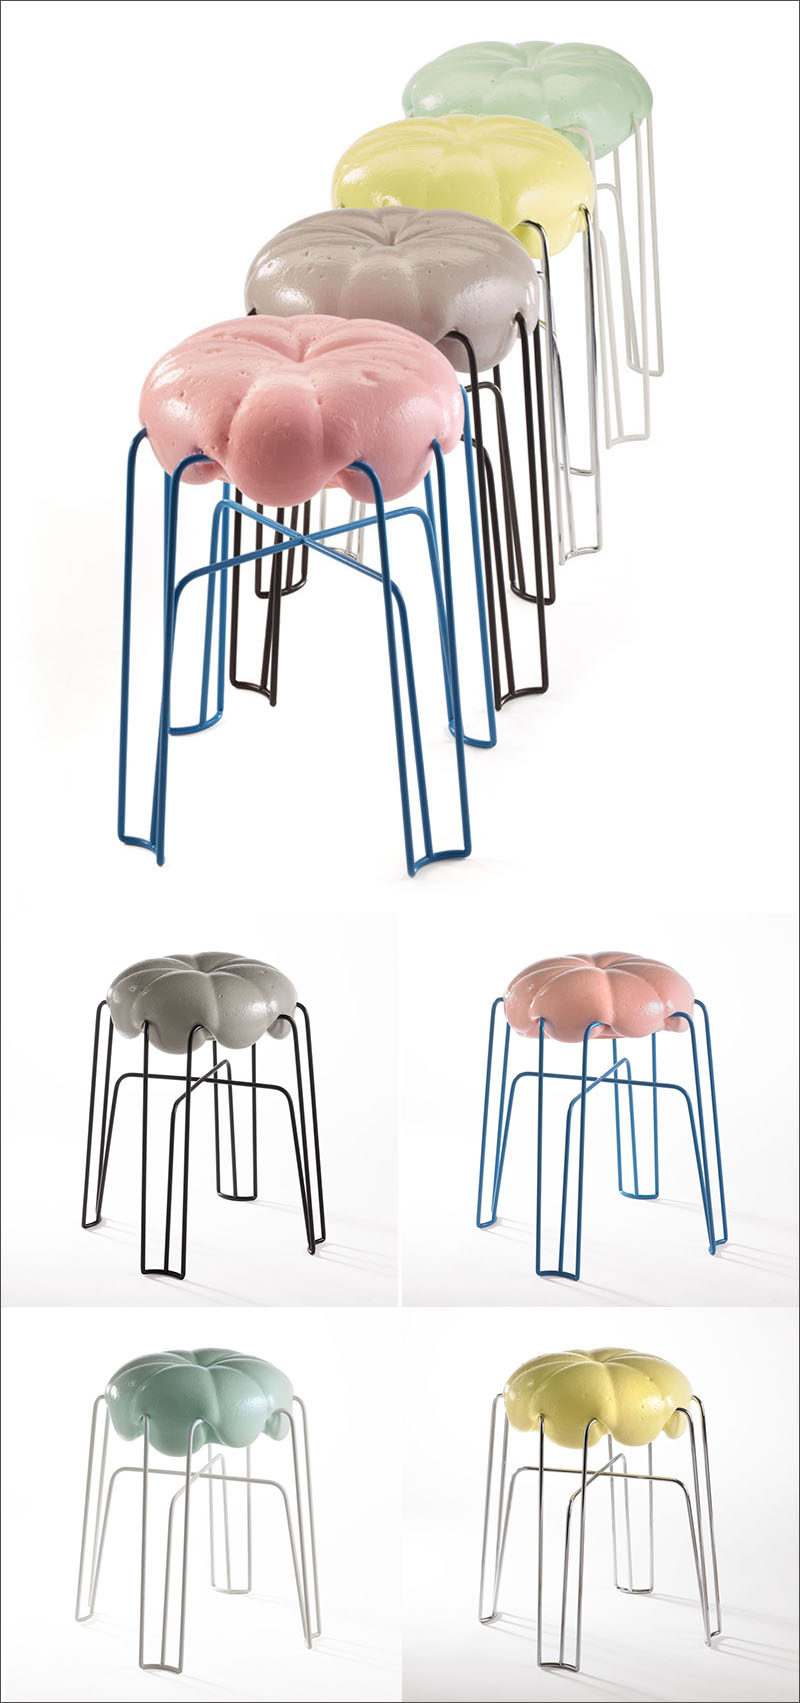 Unique Modern Furniture Design - Inspired by the value and power of play, German product designer Paul Ketz has created Marshmallow - a steel framed stool covered with a soft foam seat that mimics the look of fluffy marshmallow creme.